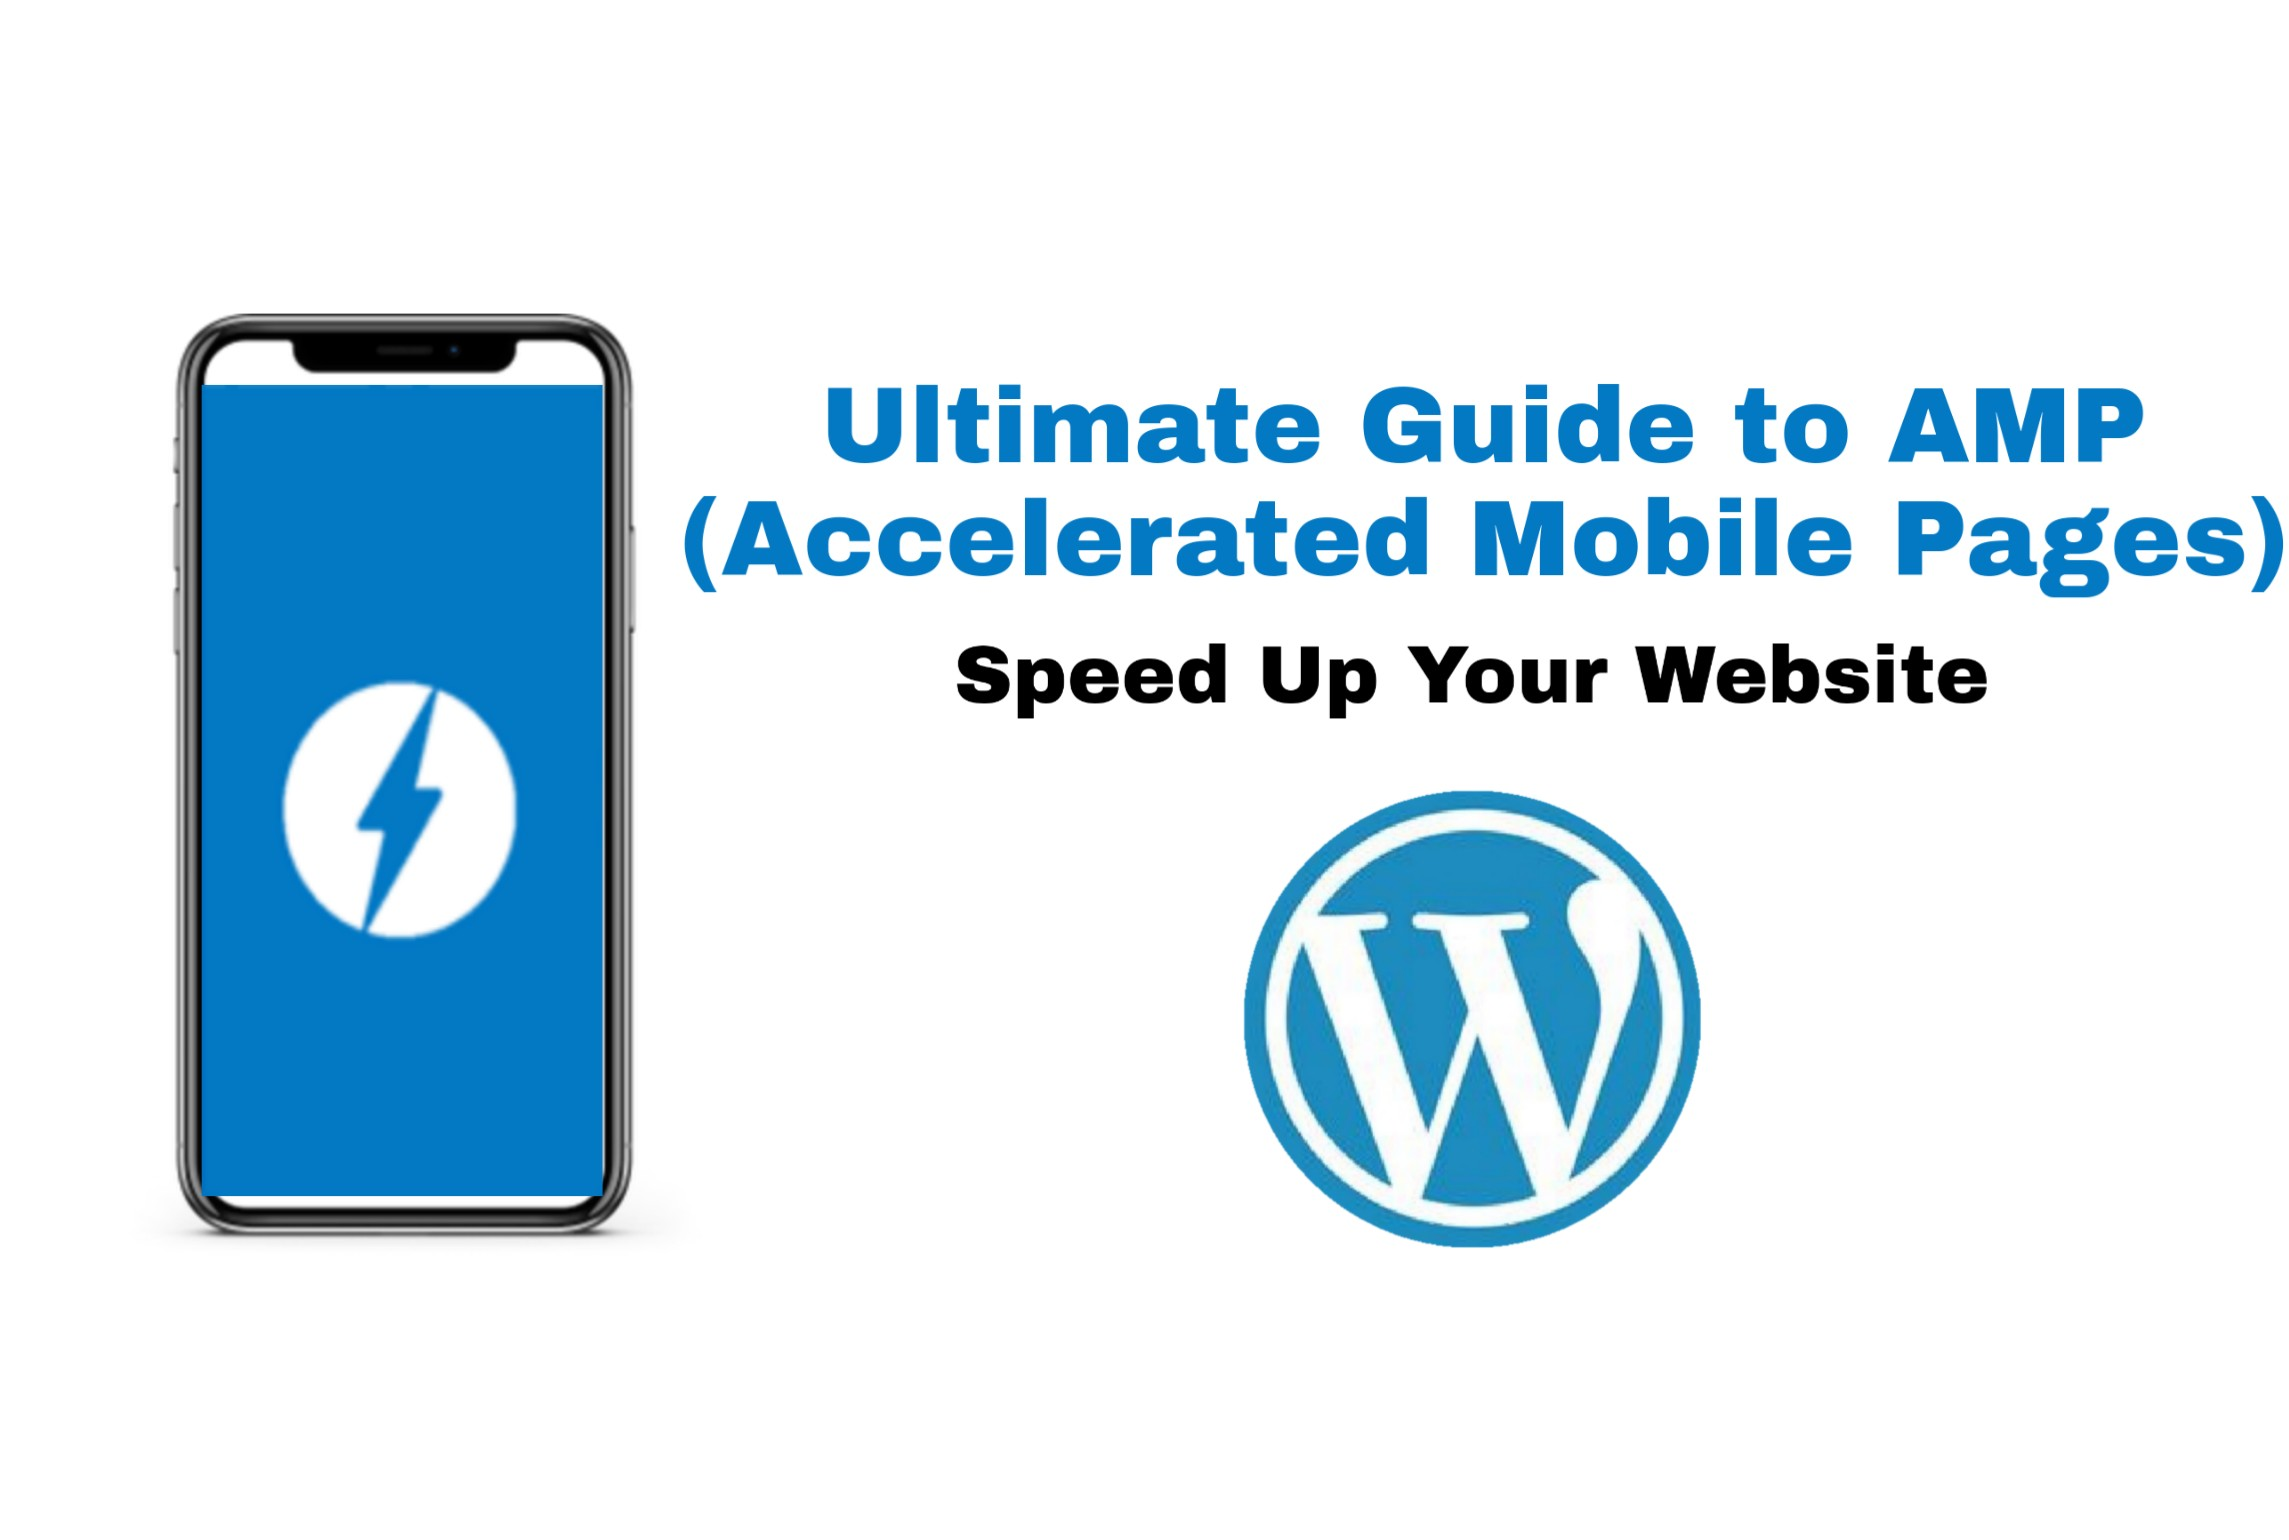 Ultimate Guide to AMP Accelerated Mobile Pages